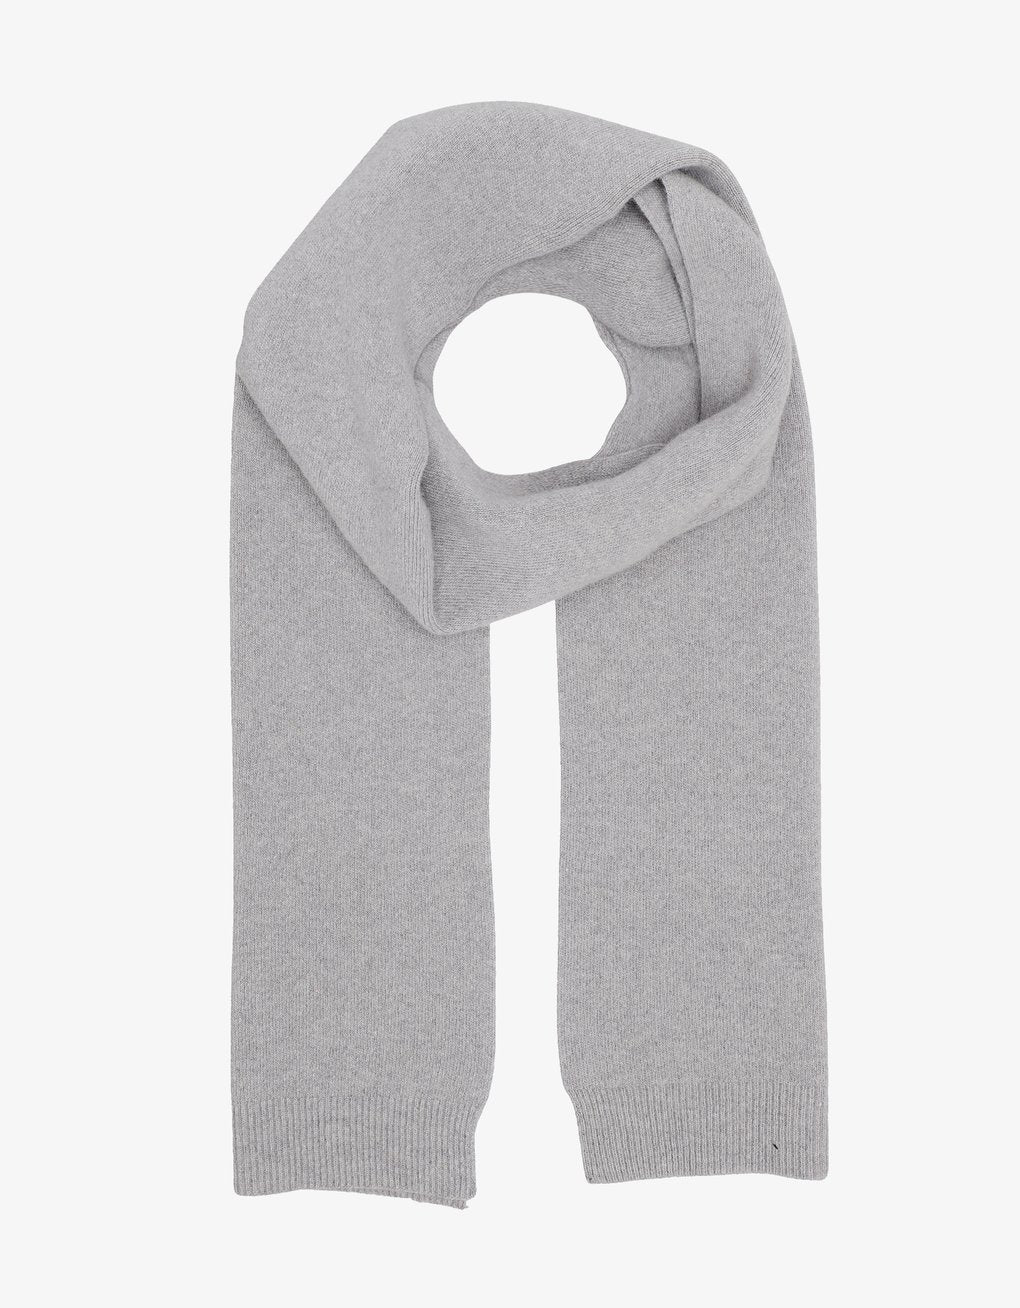 Merino Wool Scarf - Heather Grey